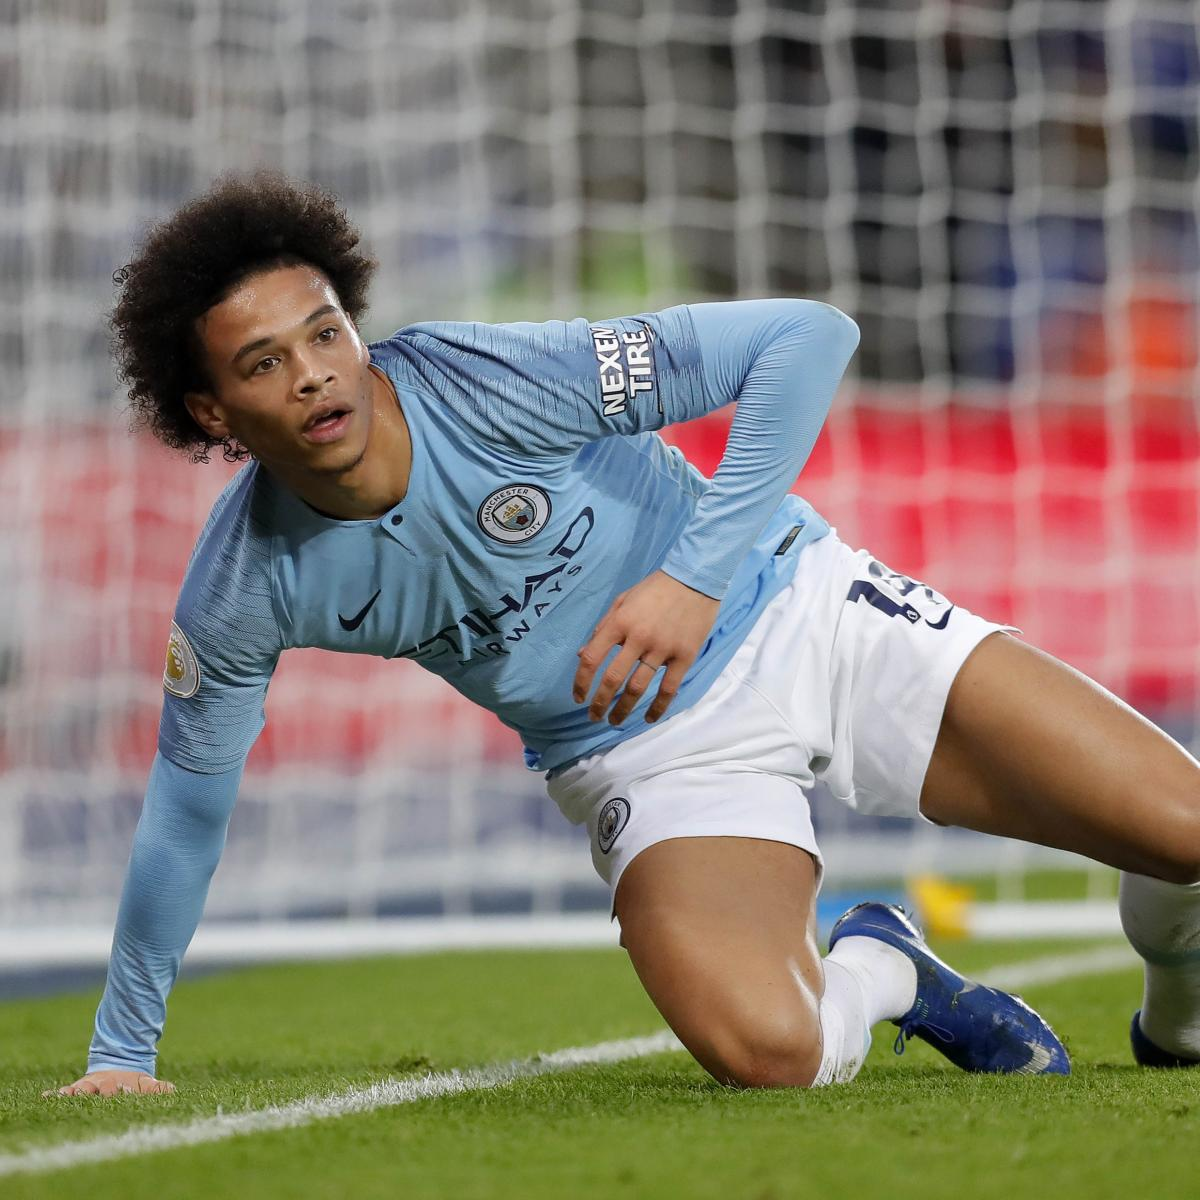 Leroy Sane Concern over Role Leaves Long-Term Manchester City Future in Doubt